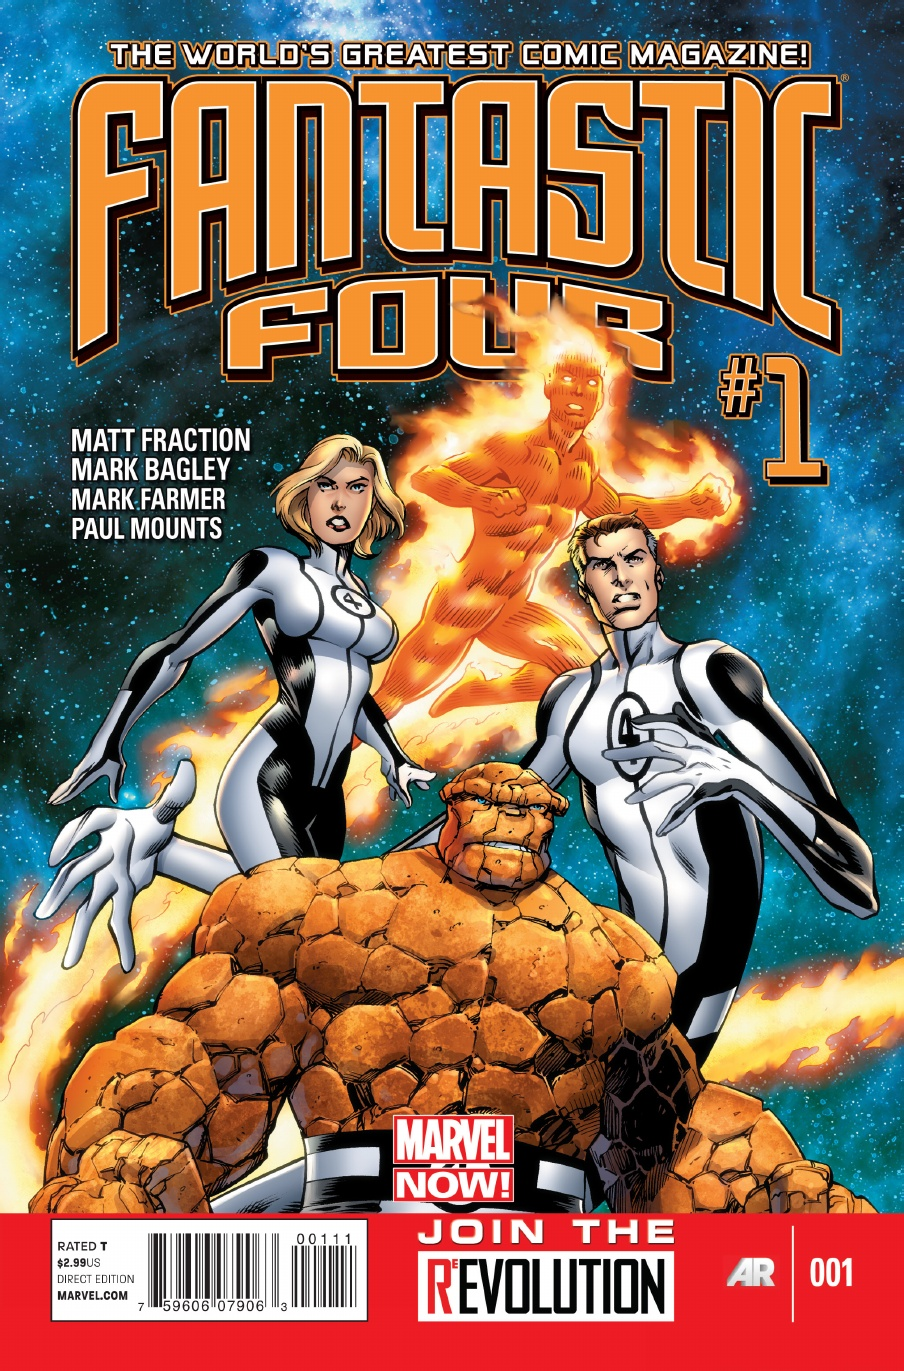 Fantasticfour1 News du 10 aot 2012